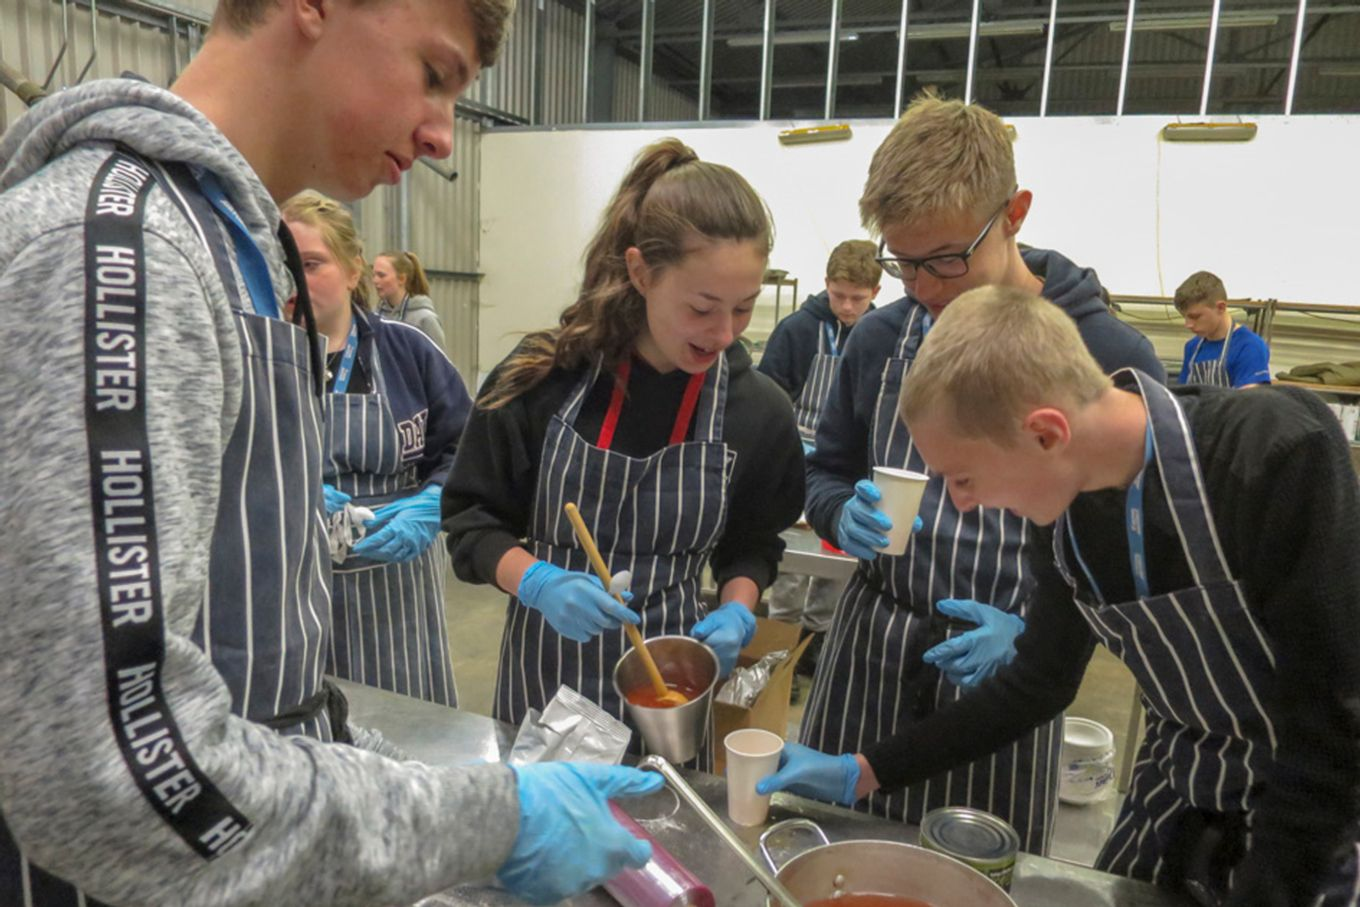 The students learn military catering with 3 Mobile Catering Squadron.